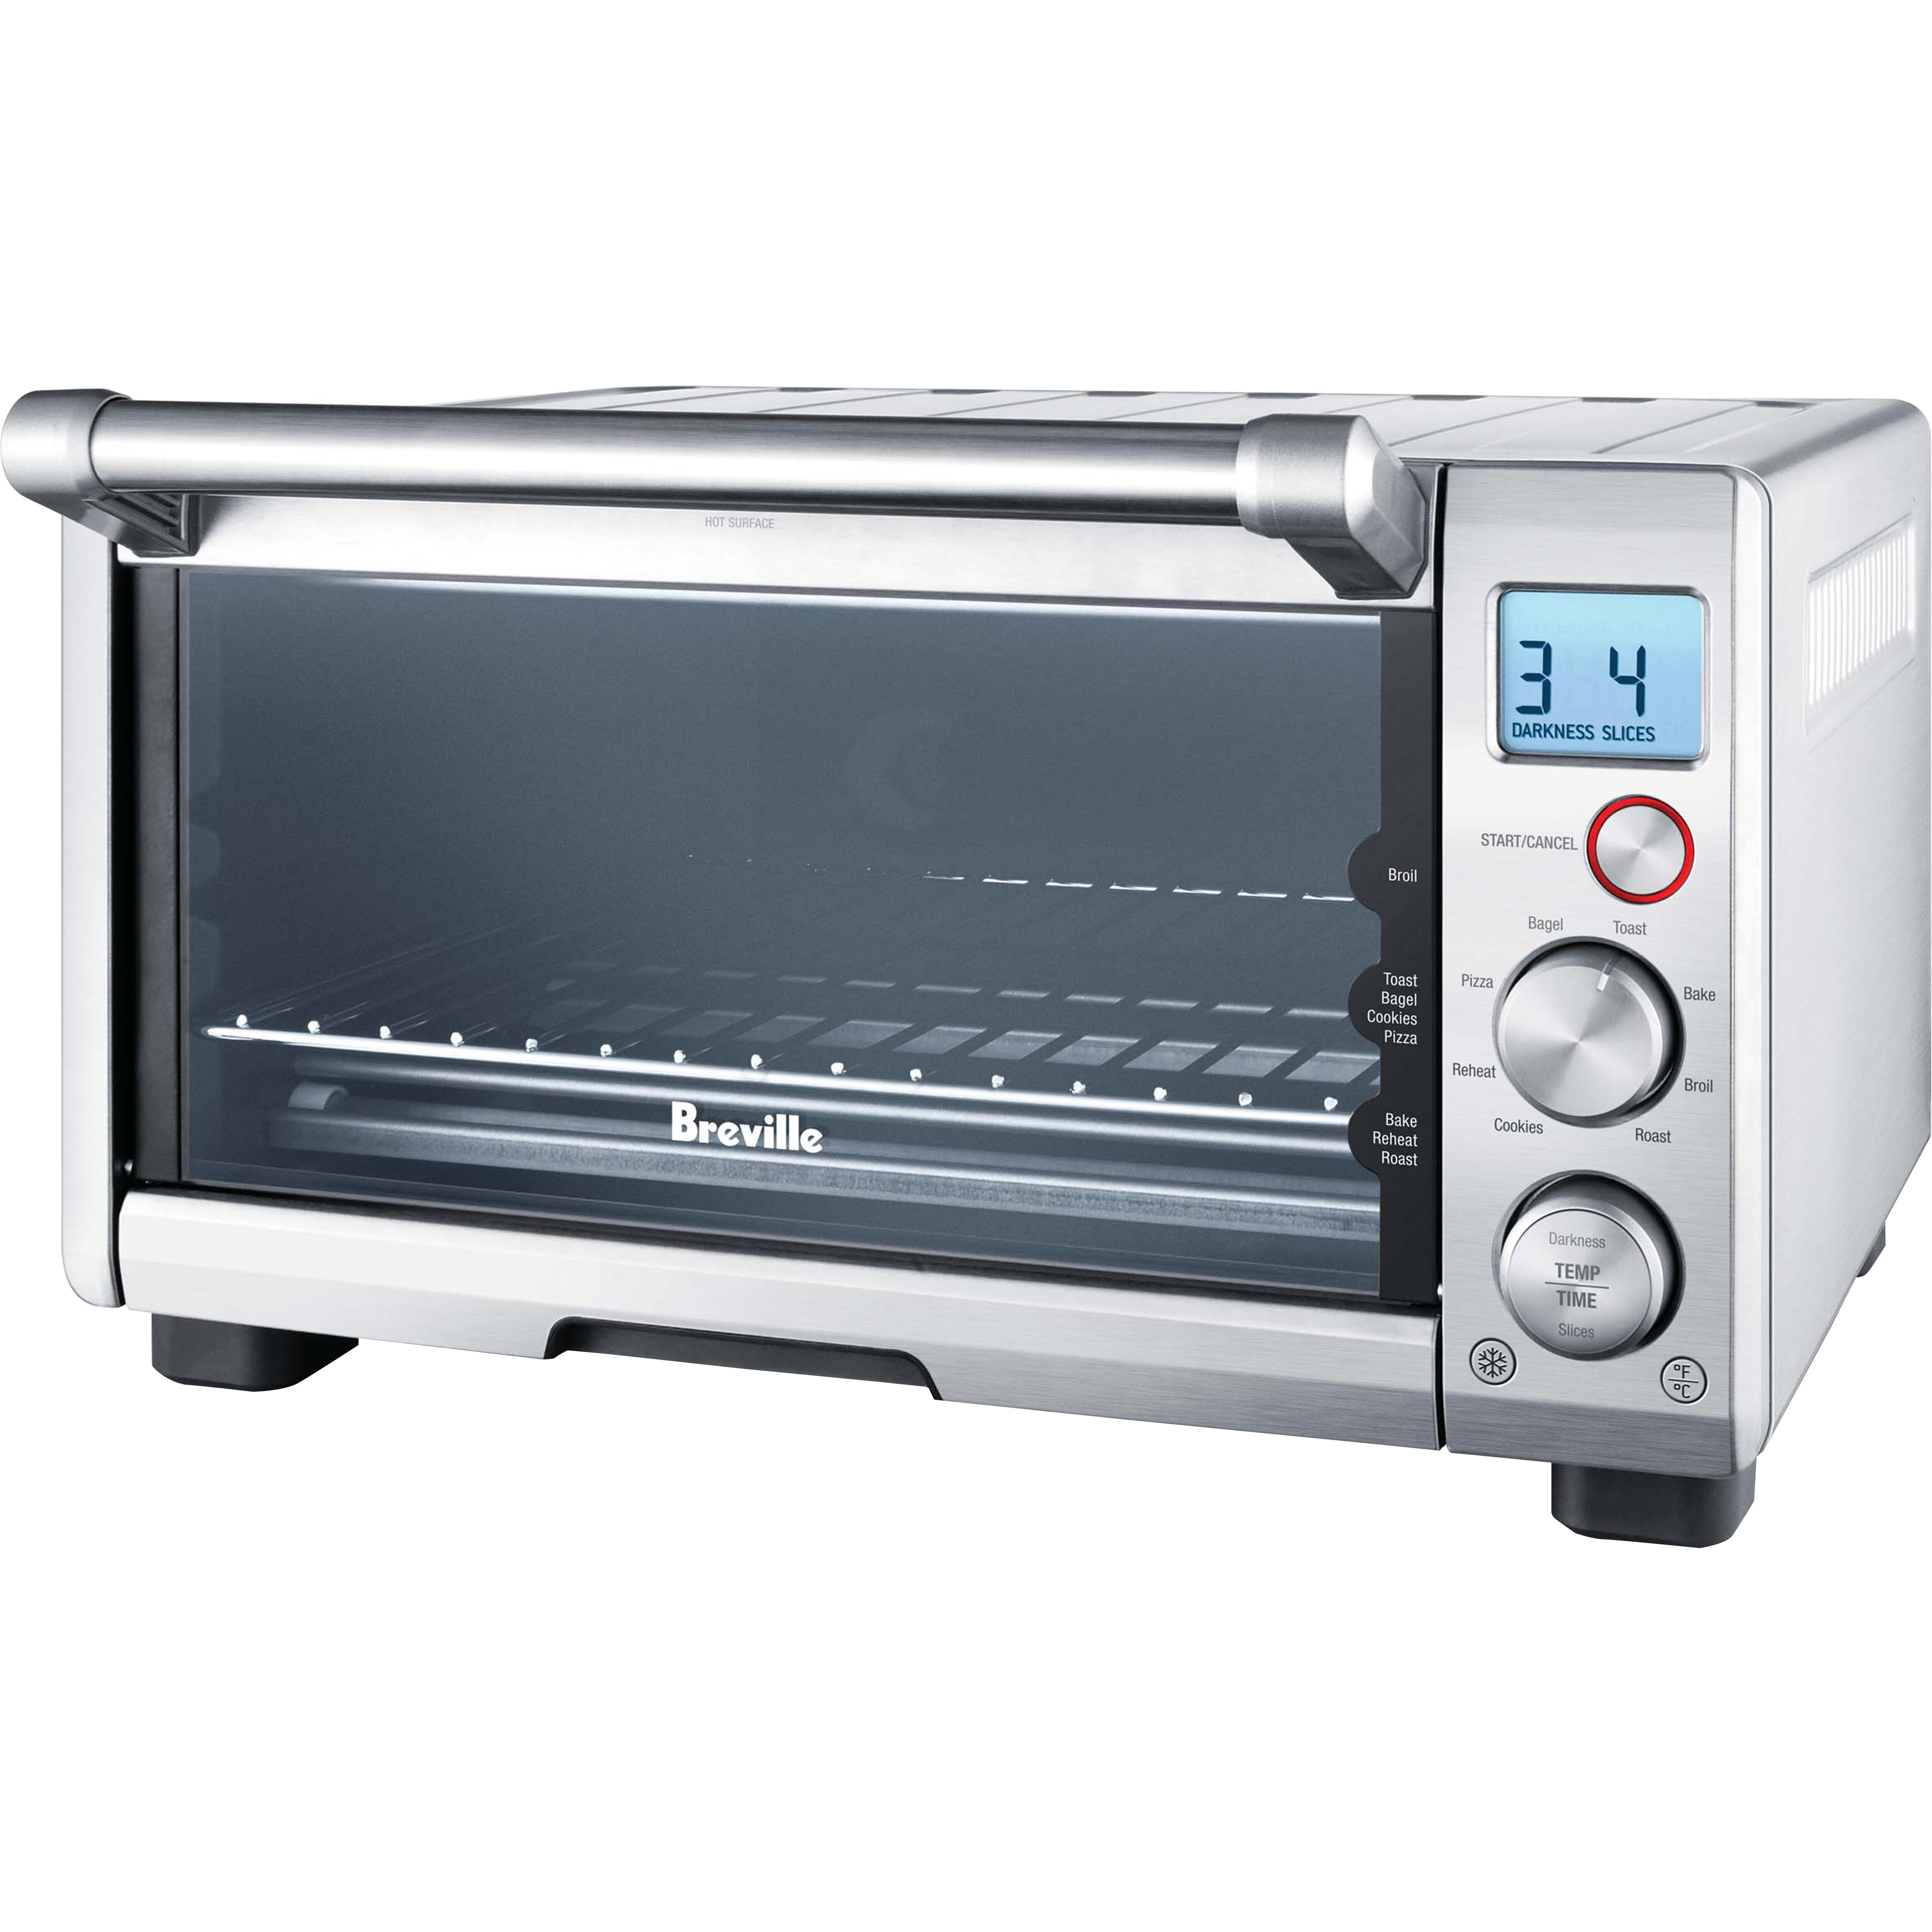 Under the cabinet toaster oven - Breville Compact Smart Toaster Oven